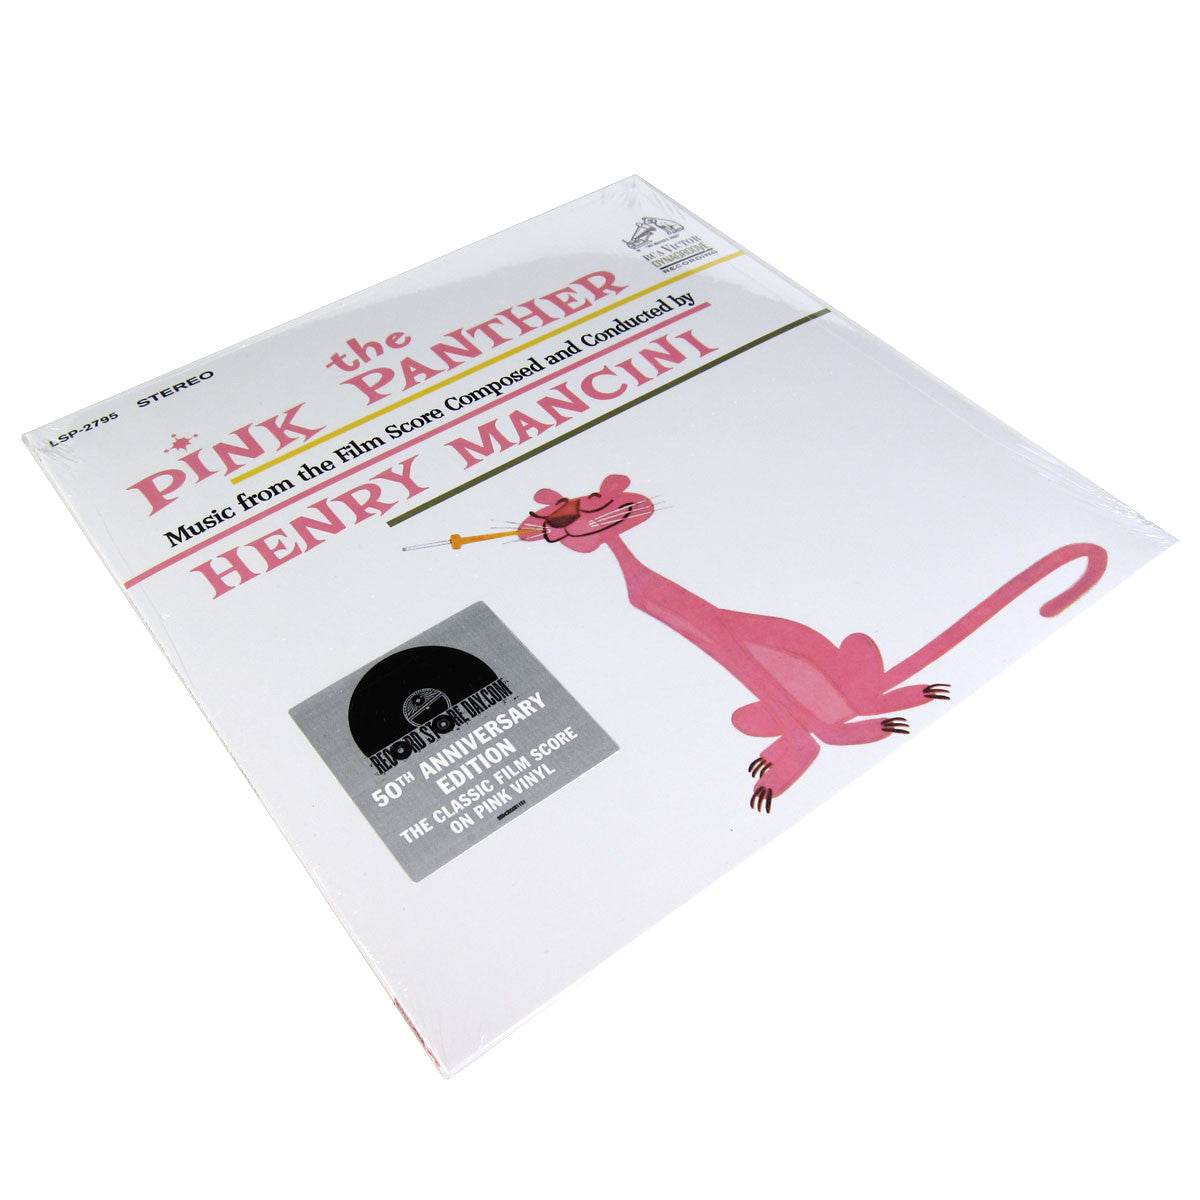 Henry Mancini: The Pink Panther - Music From The Film Score Vinyl LP (Record Store Day 2014)